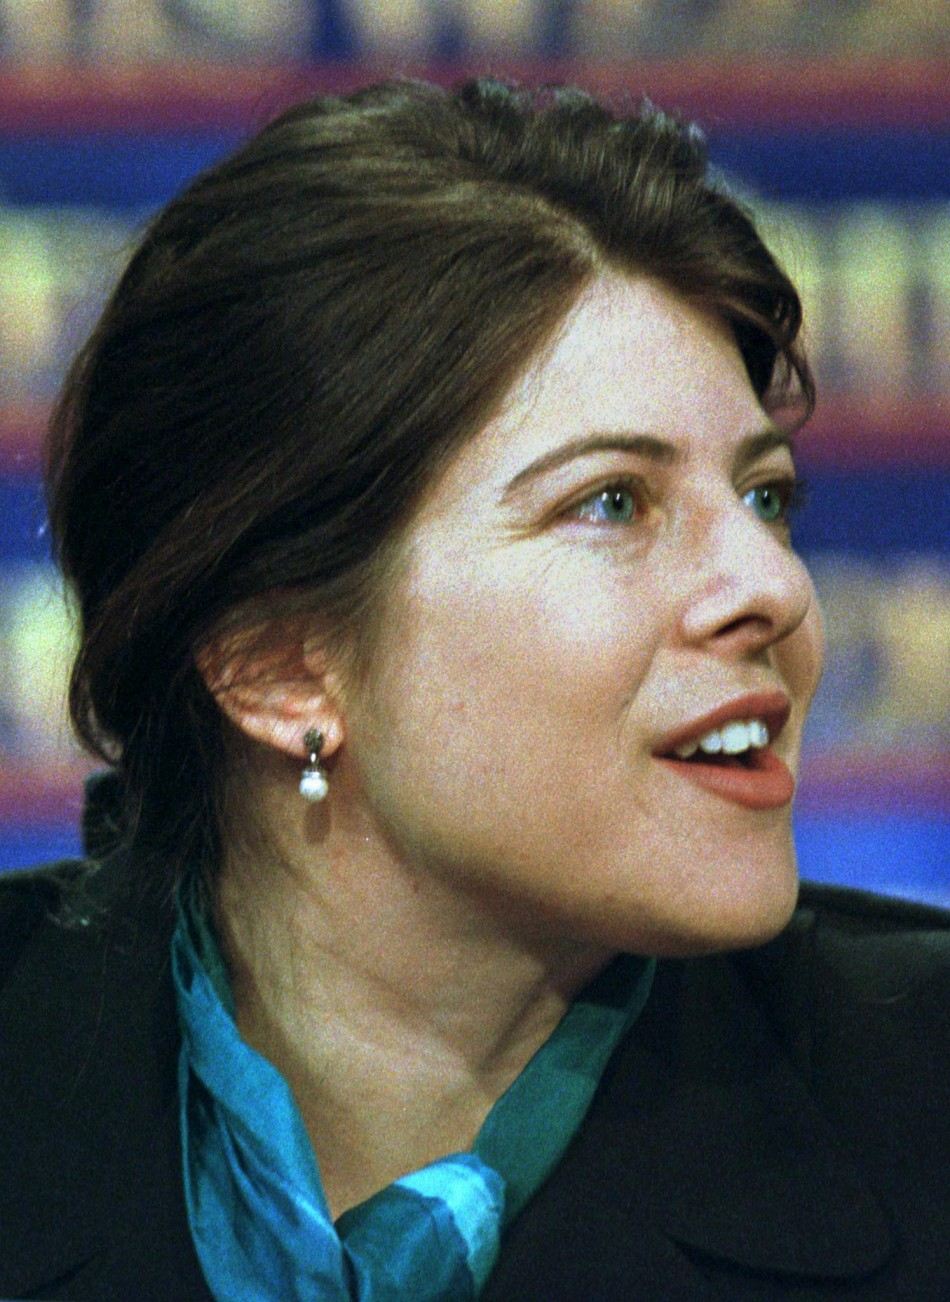 Occupy Wall Street Protest: Police Arrest Author Naomi Wolf for Reciting First Amendment